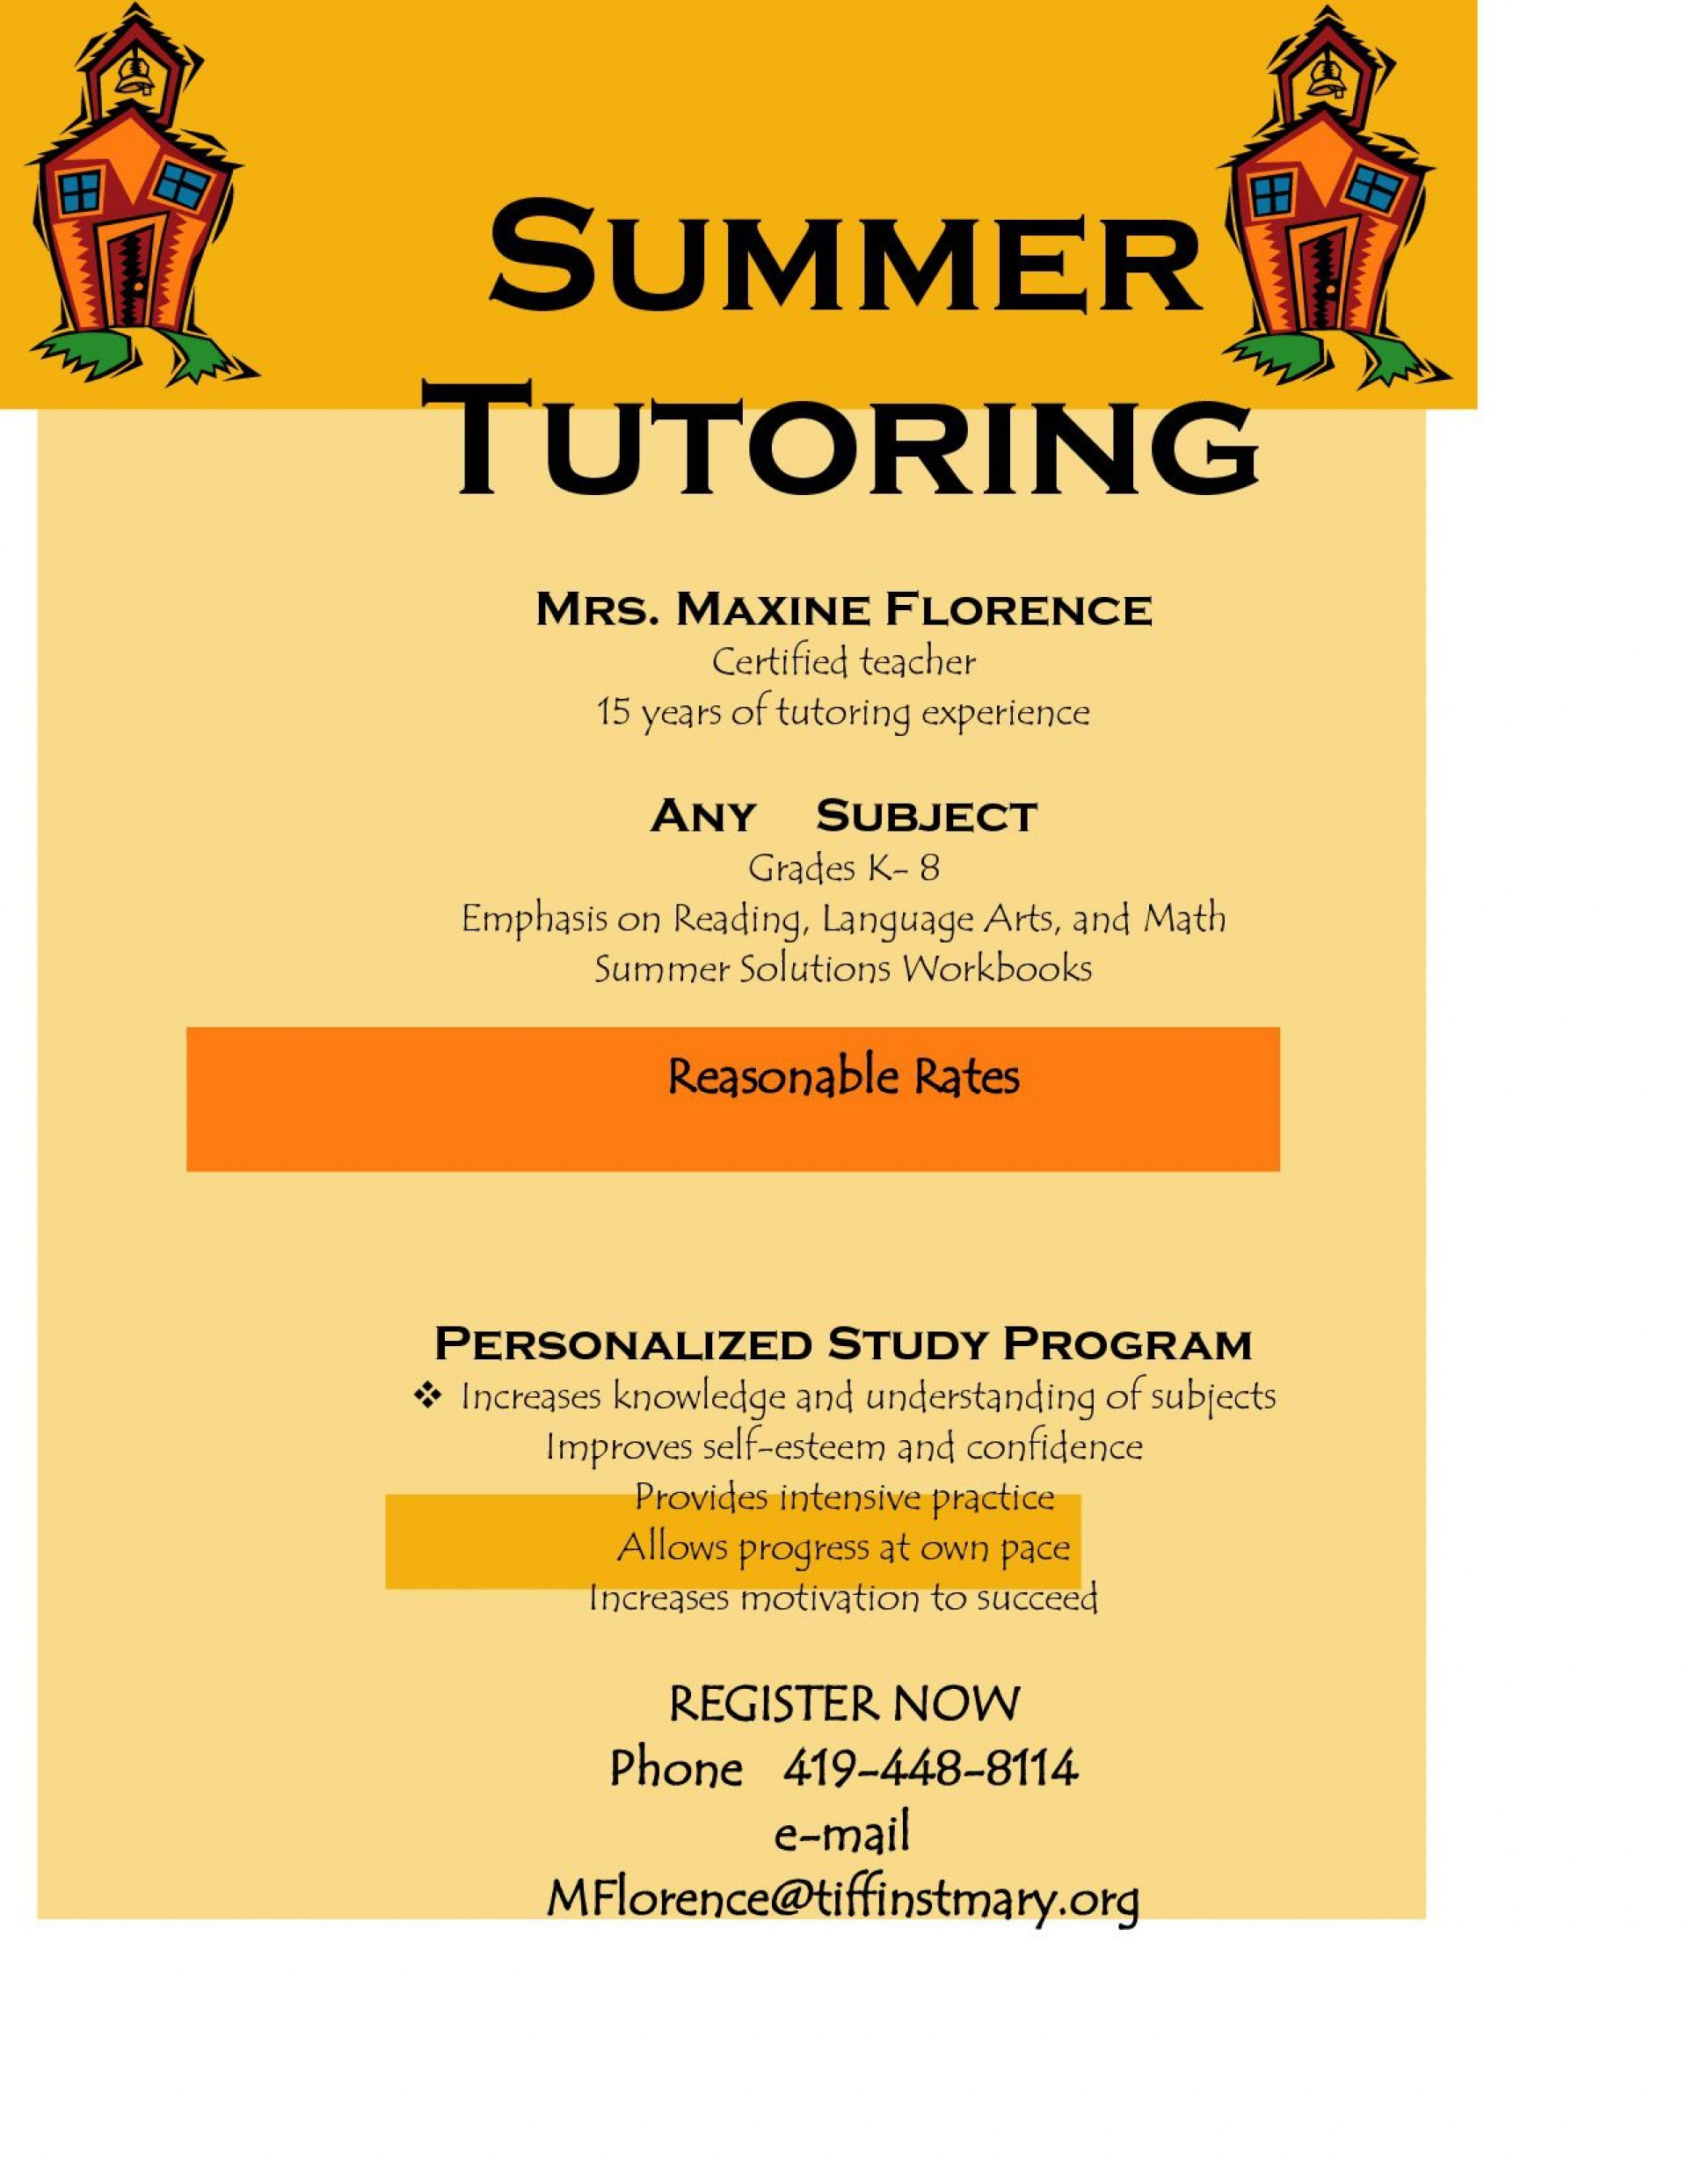 008 Stupendou Tutoring Flyer Template Free Concept  Word Math1920